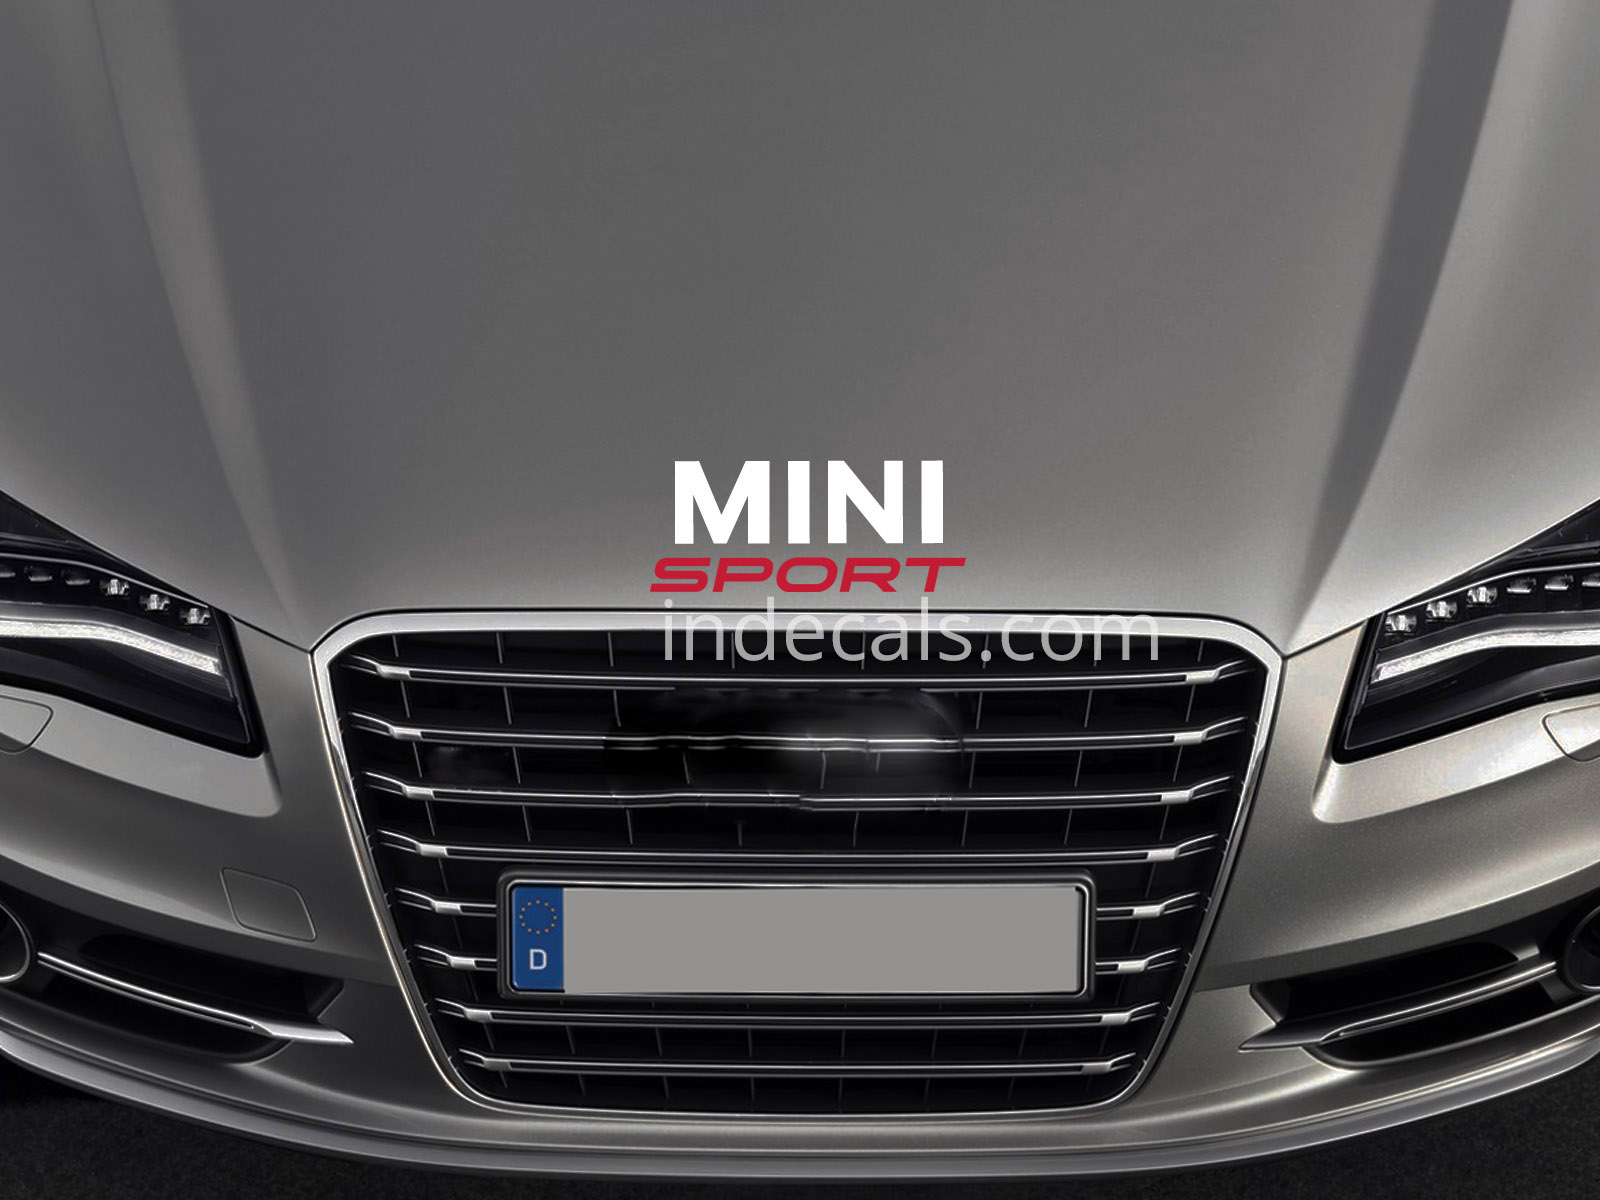 1 x Mini Sport Sticker for Bonnet - White & Red